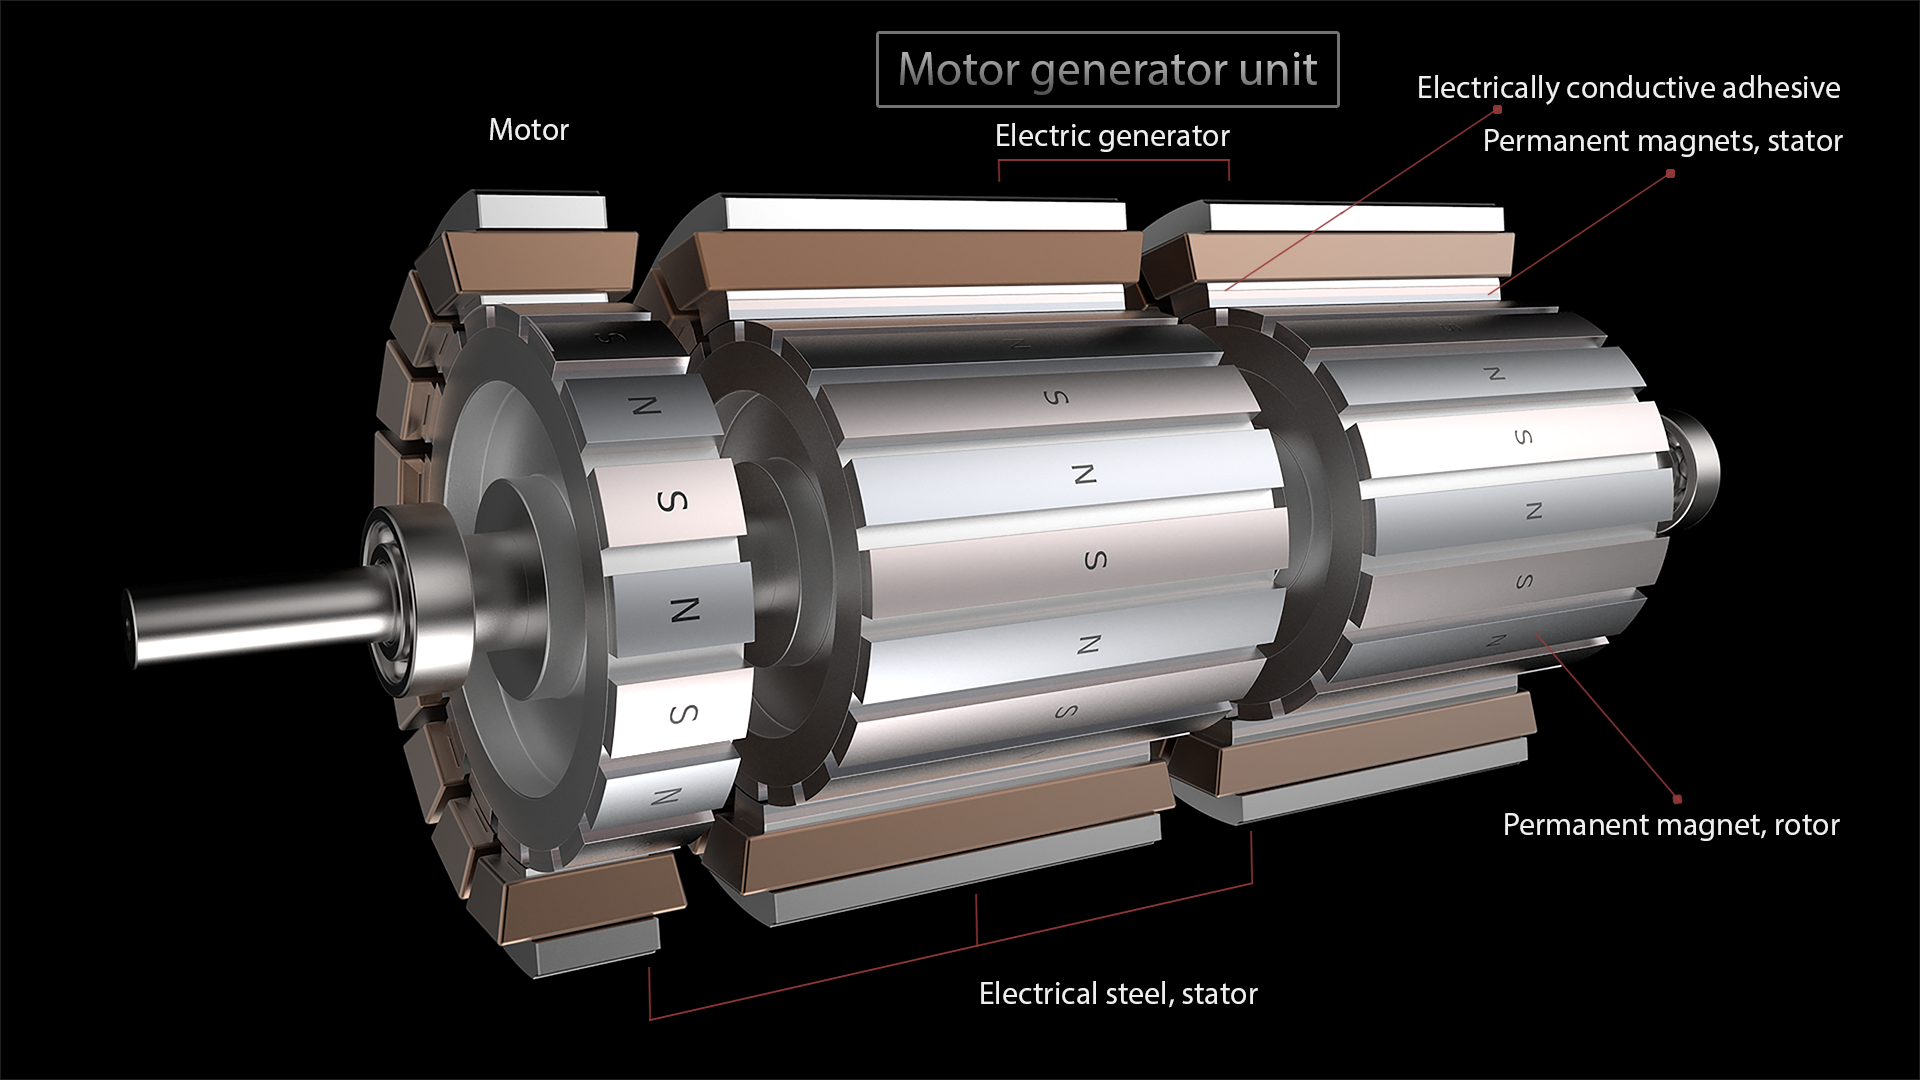 Motor Generator Unit Medium Electric Permanent Magnets Are Located On The Rotor And Stator Of Electrical Steel